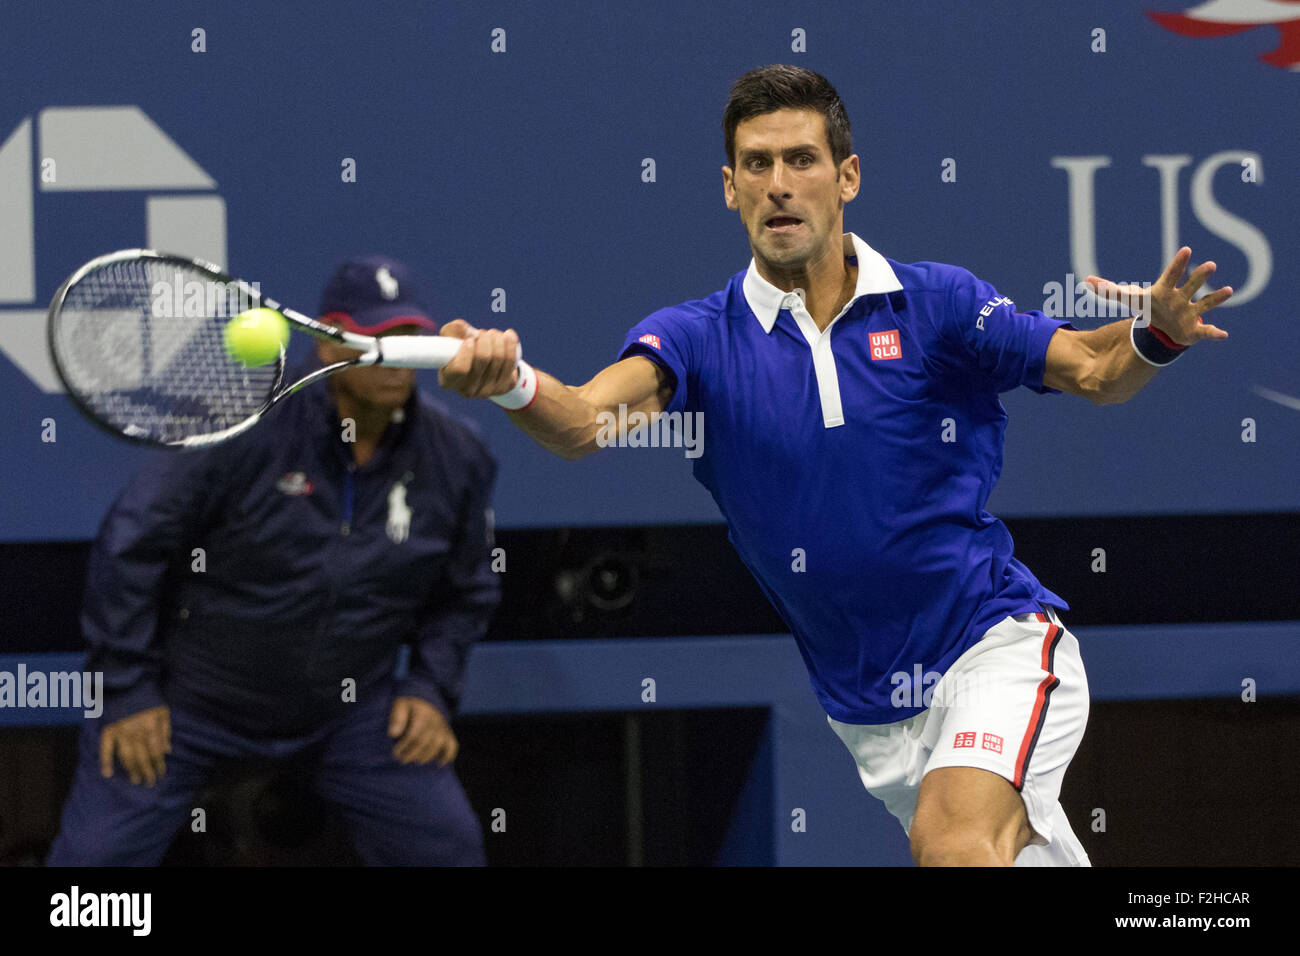 Novak Djokovic (SRB) winner of the Men's Final at the  2015 US Open Tennis - Stock Image